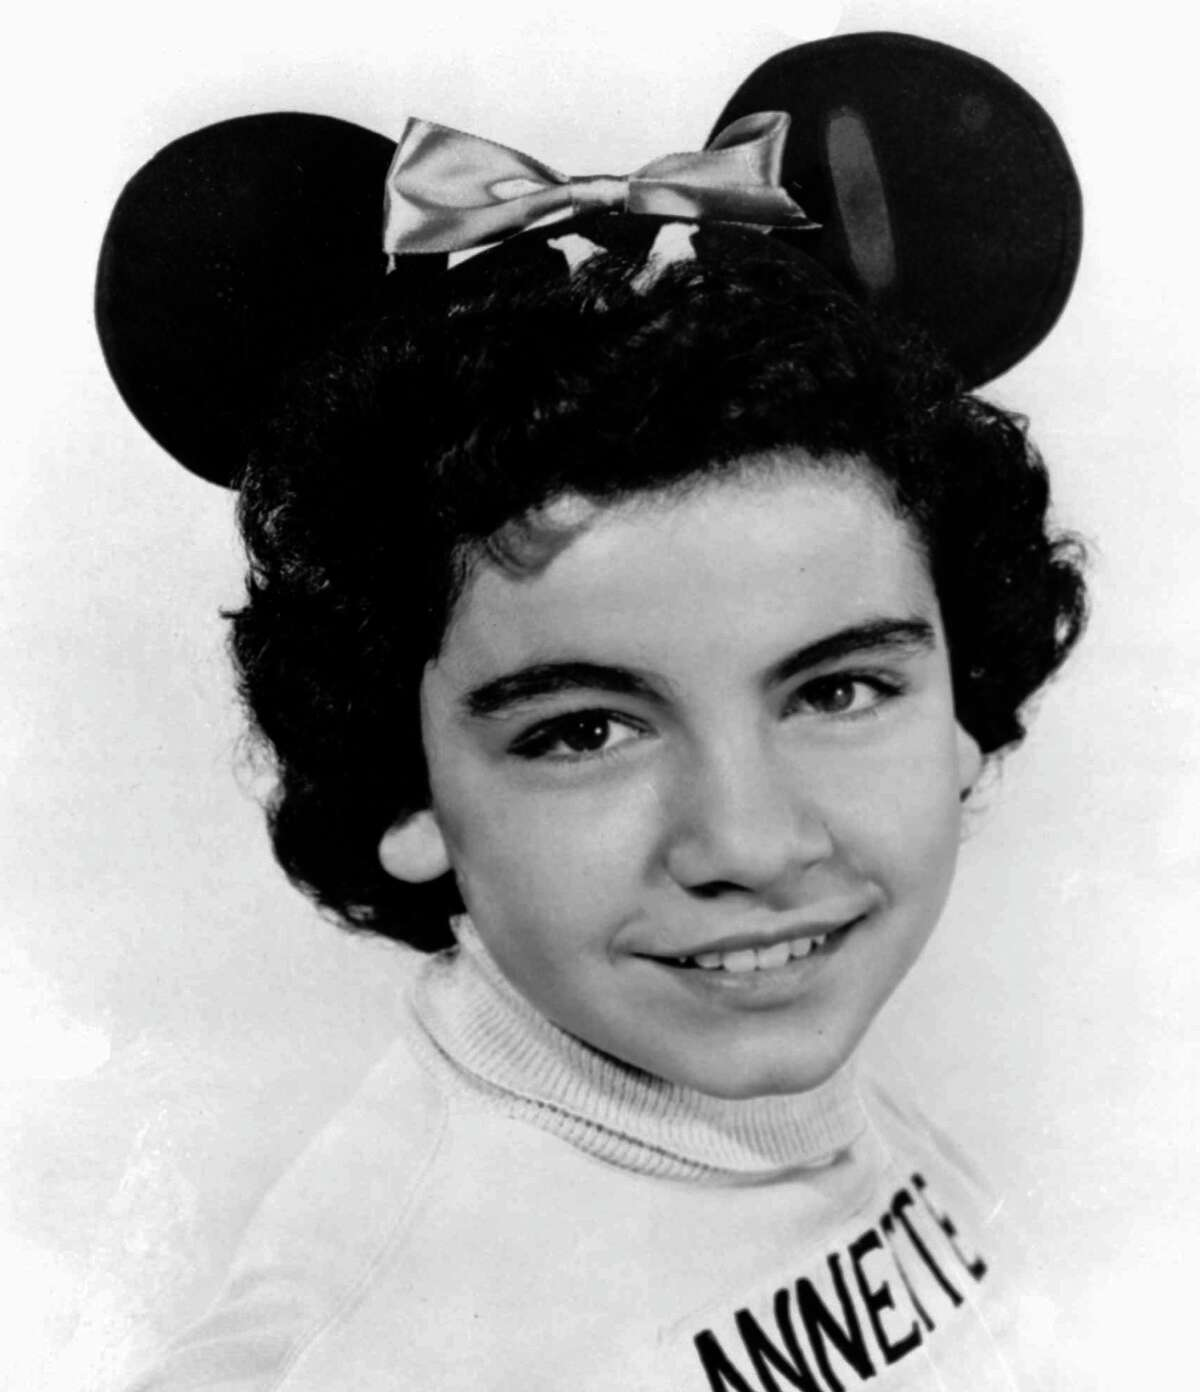 In 1955, Annette Funicello donned Mickey Mouse ears as the last of the original Mousketeers.